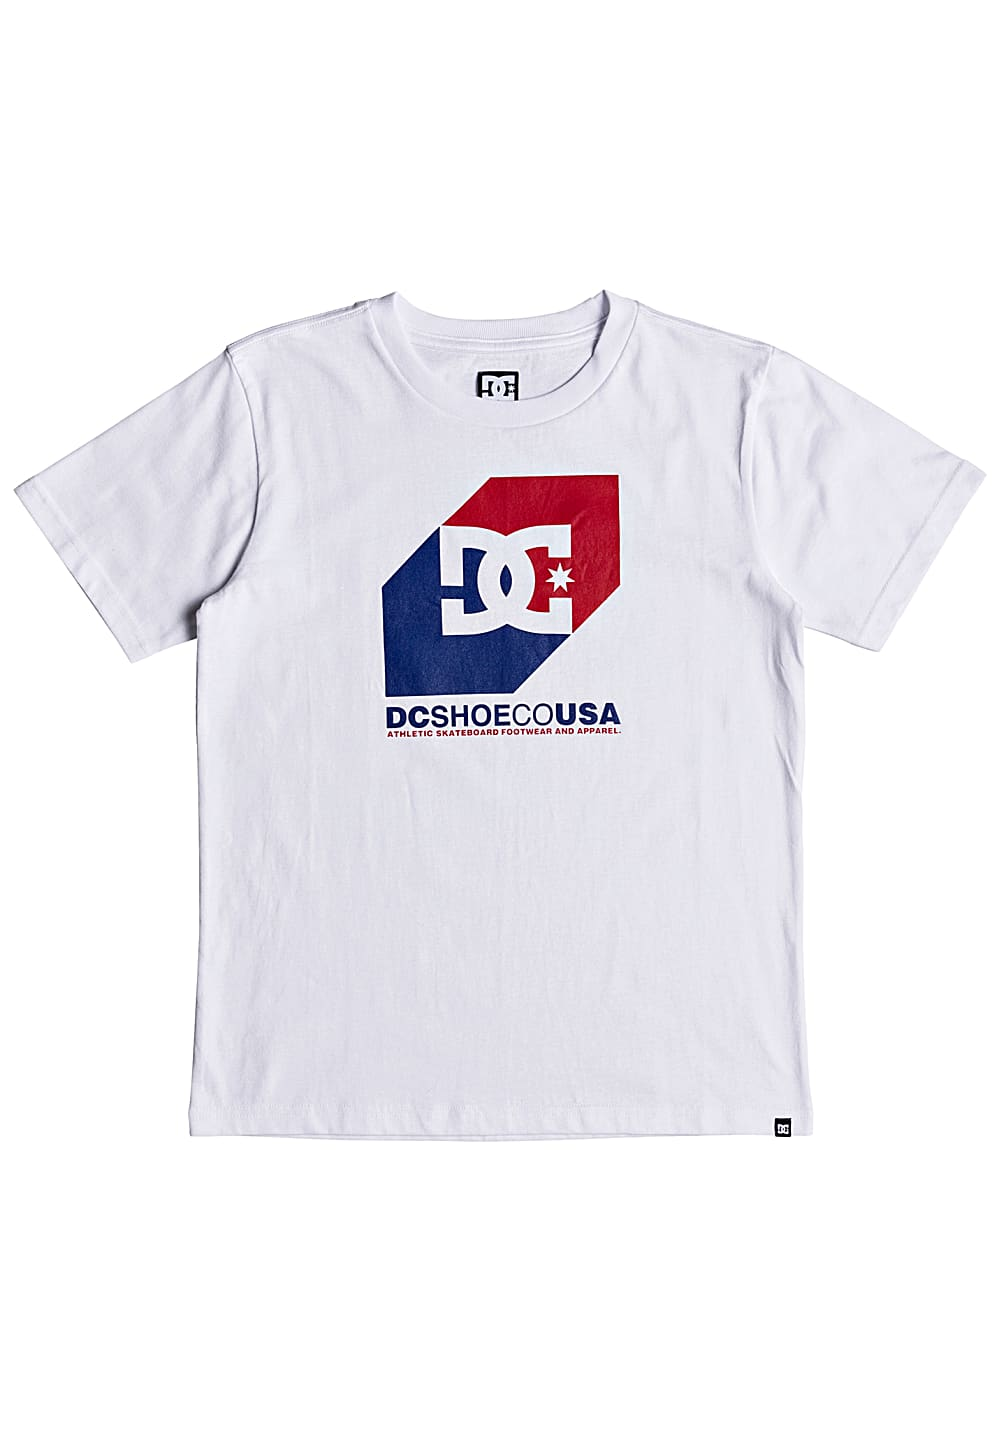 Boysoberteile - DC Nosed Up T-Shirt für Jungs Weiß - Onlineshop Planet Sports